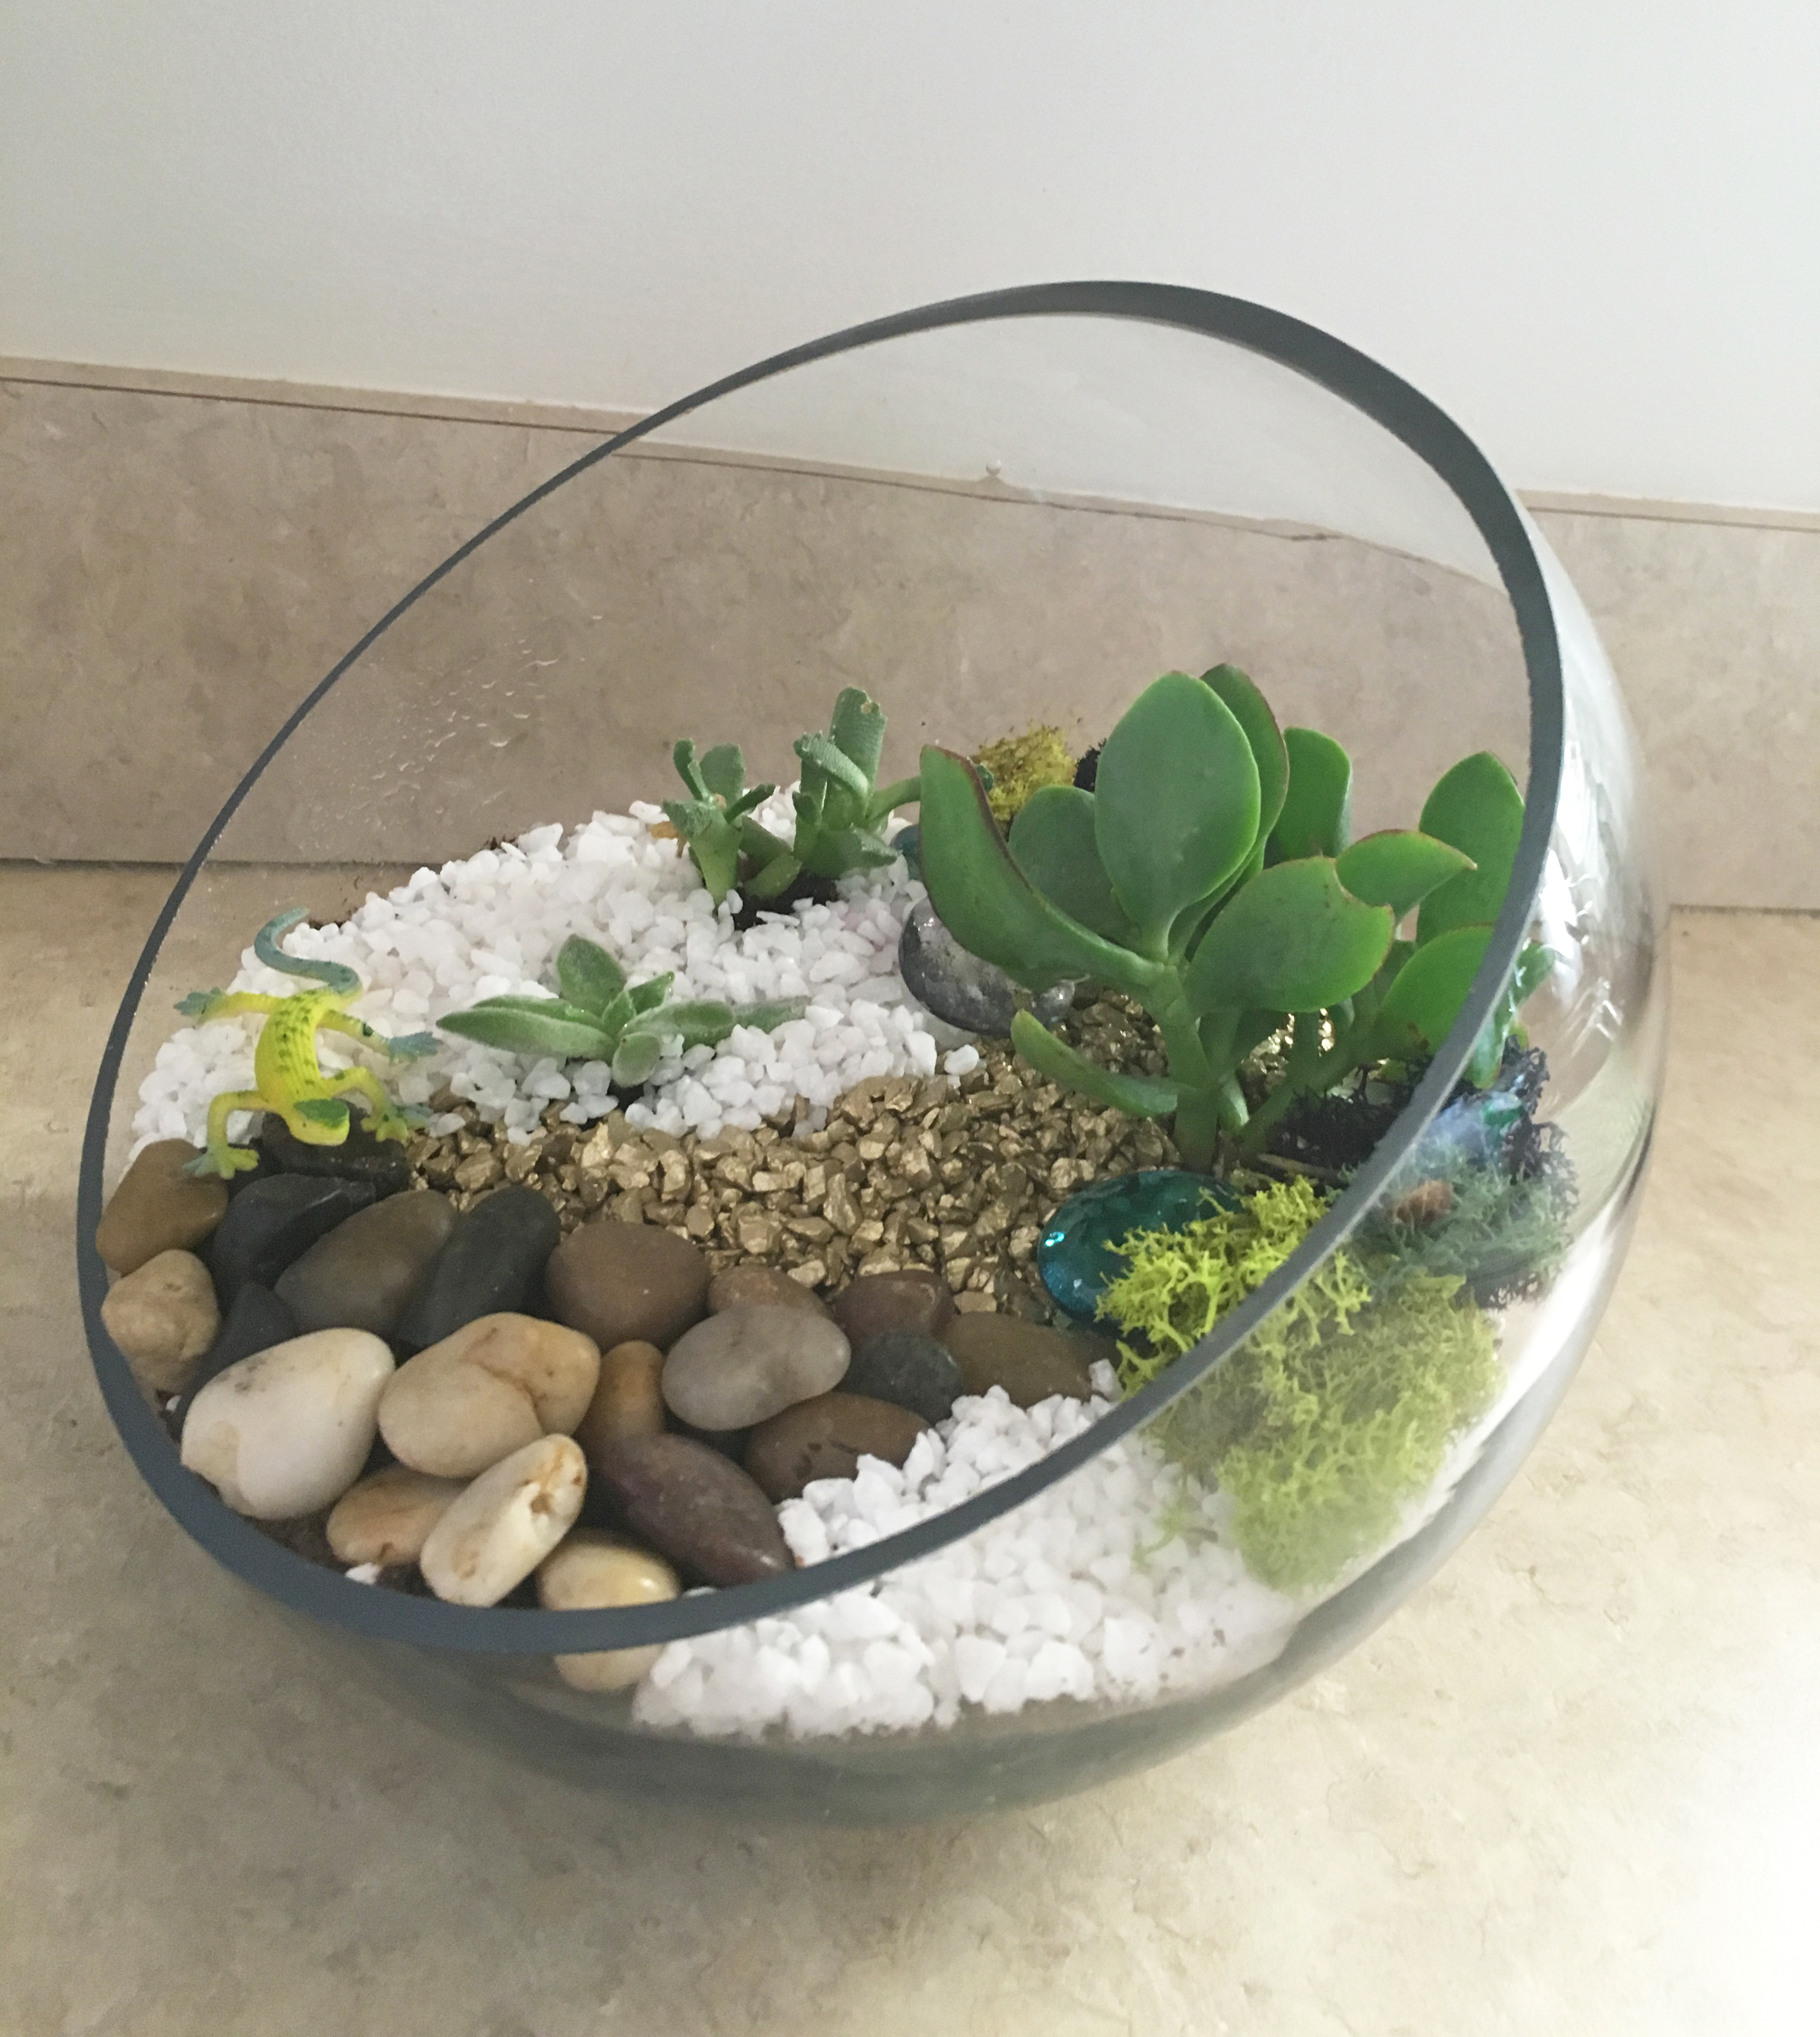 A Succulent Terrarium in 8quot Sloped Glass Bowl plant nite project by Yaymaker